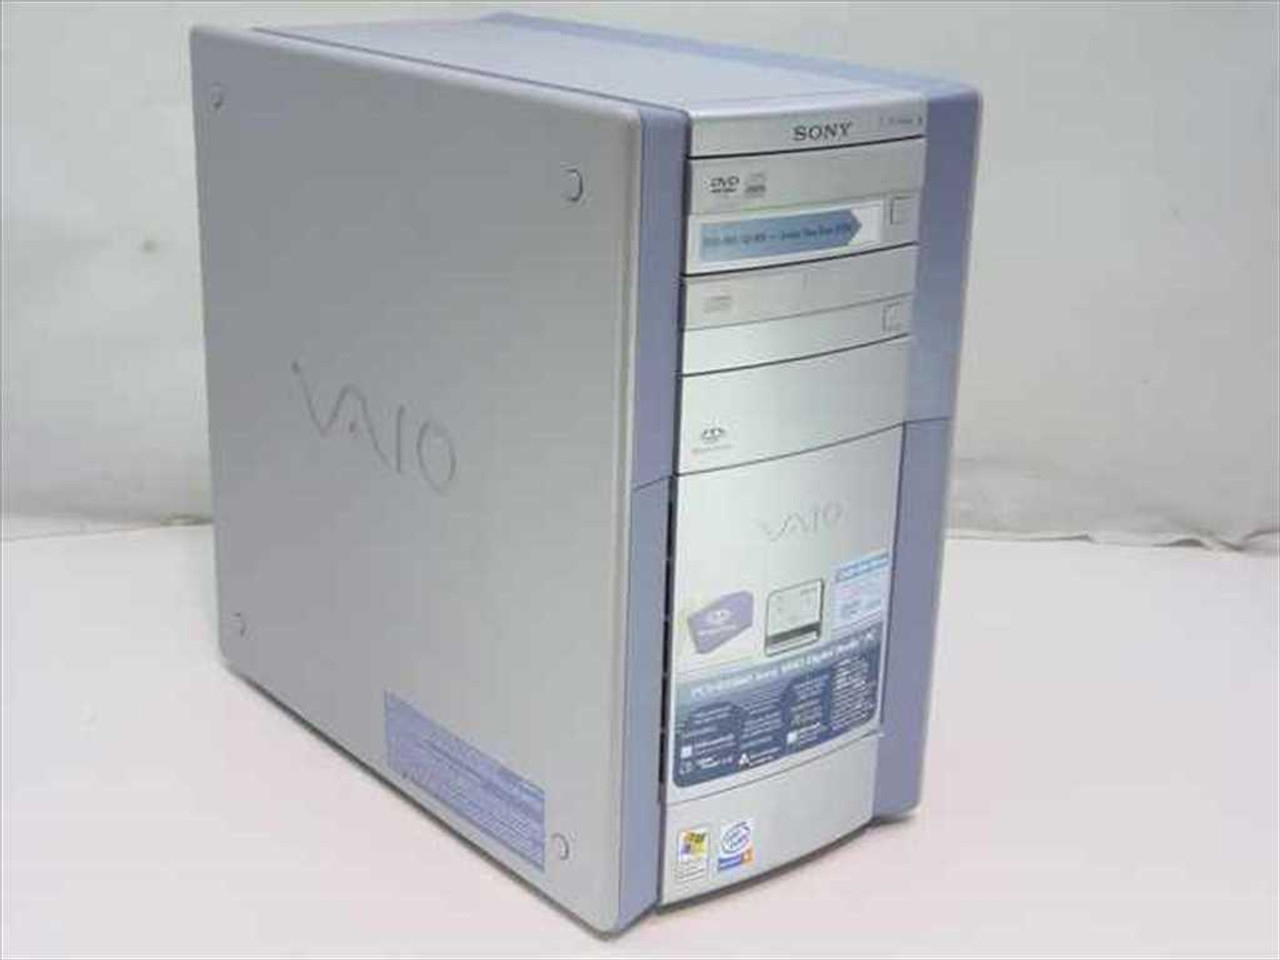 Bluetooth driver for sony vaio